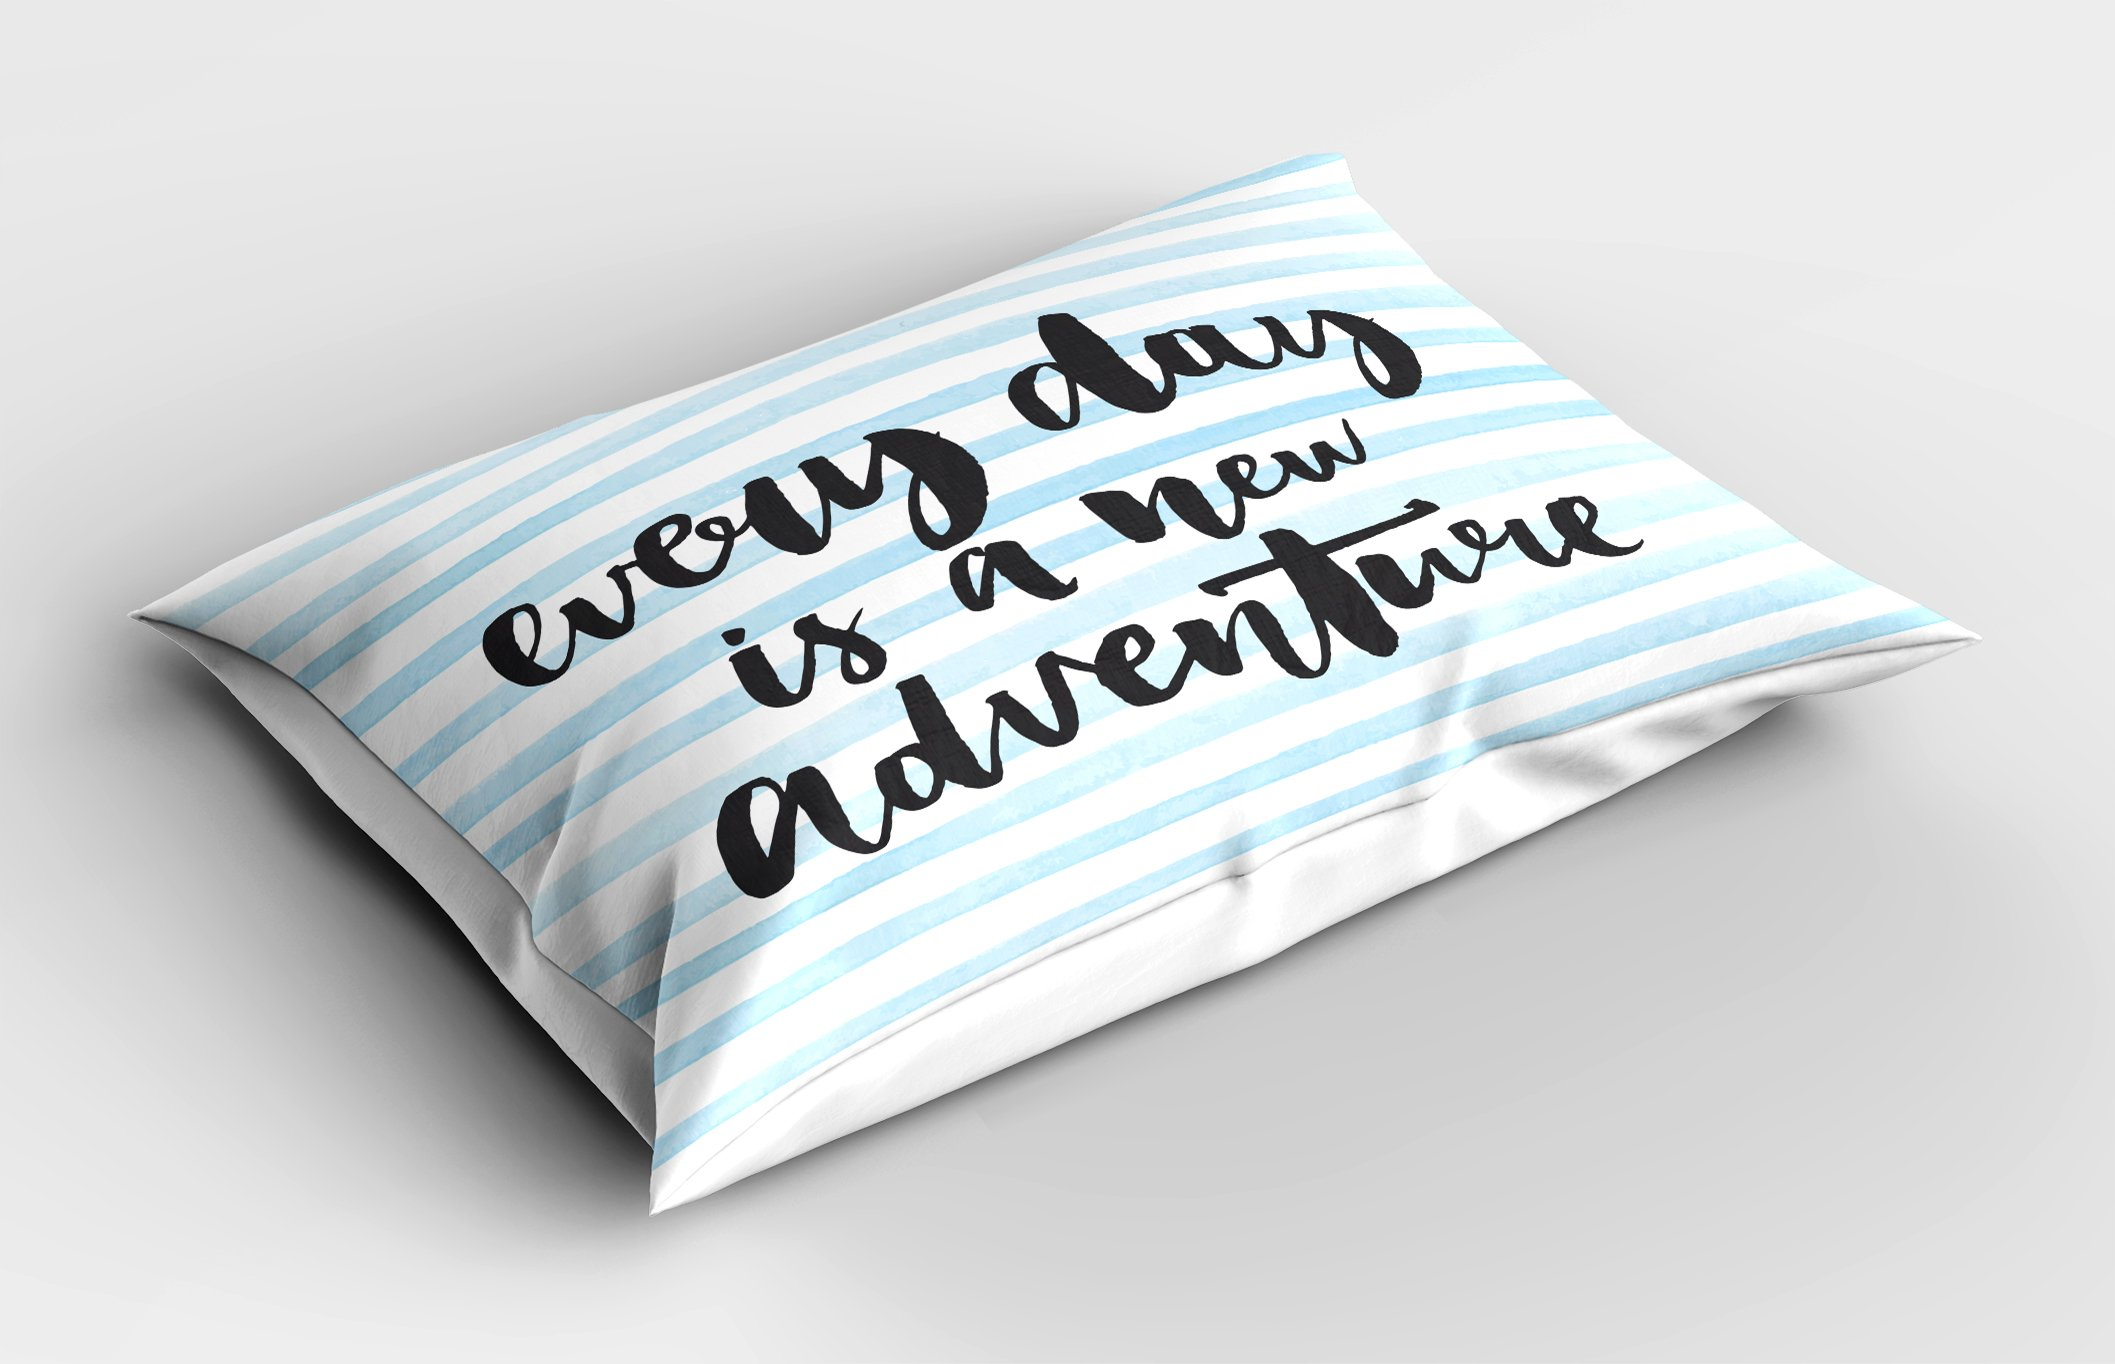 Lunarable Quote Pillow Sham, Everyday is a New Adventure Calligraphy on Striped Background, Decorative Standard Size Printed Pillowcase, 26 X 20 inches, Baby Blue White and Charcoal Grey by Lunarable (Image #2)